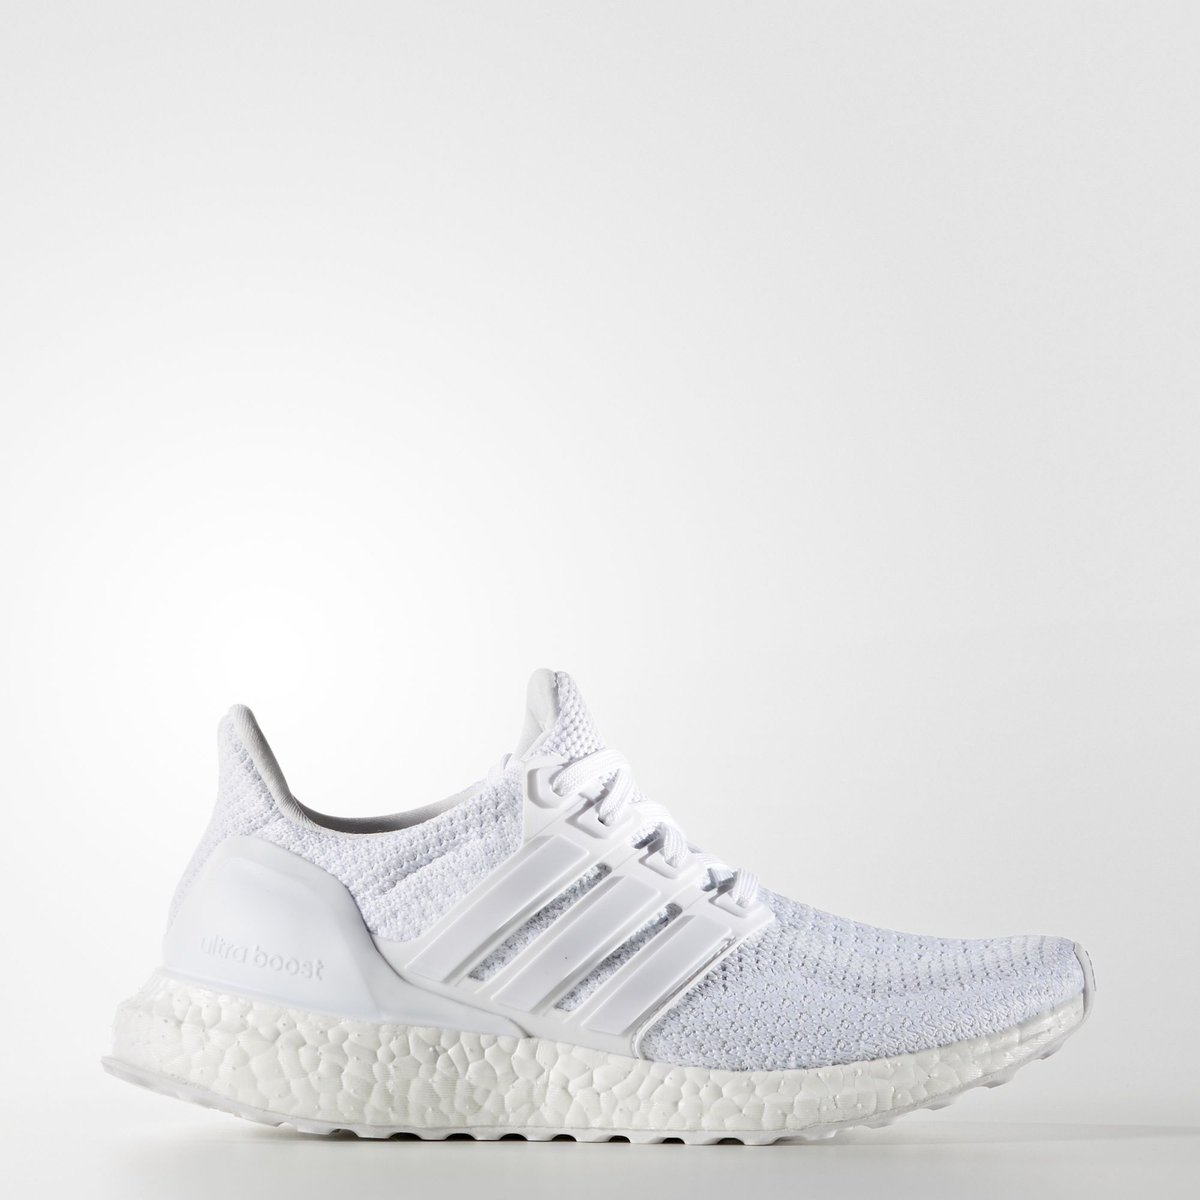 106a91661 adidas alerts on Twitter